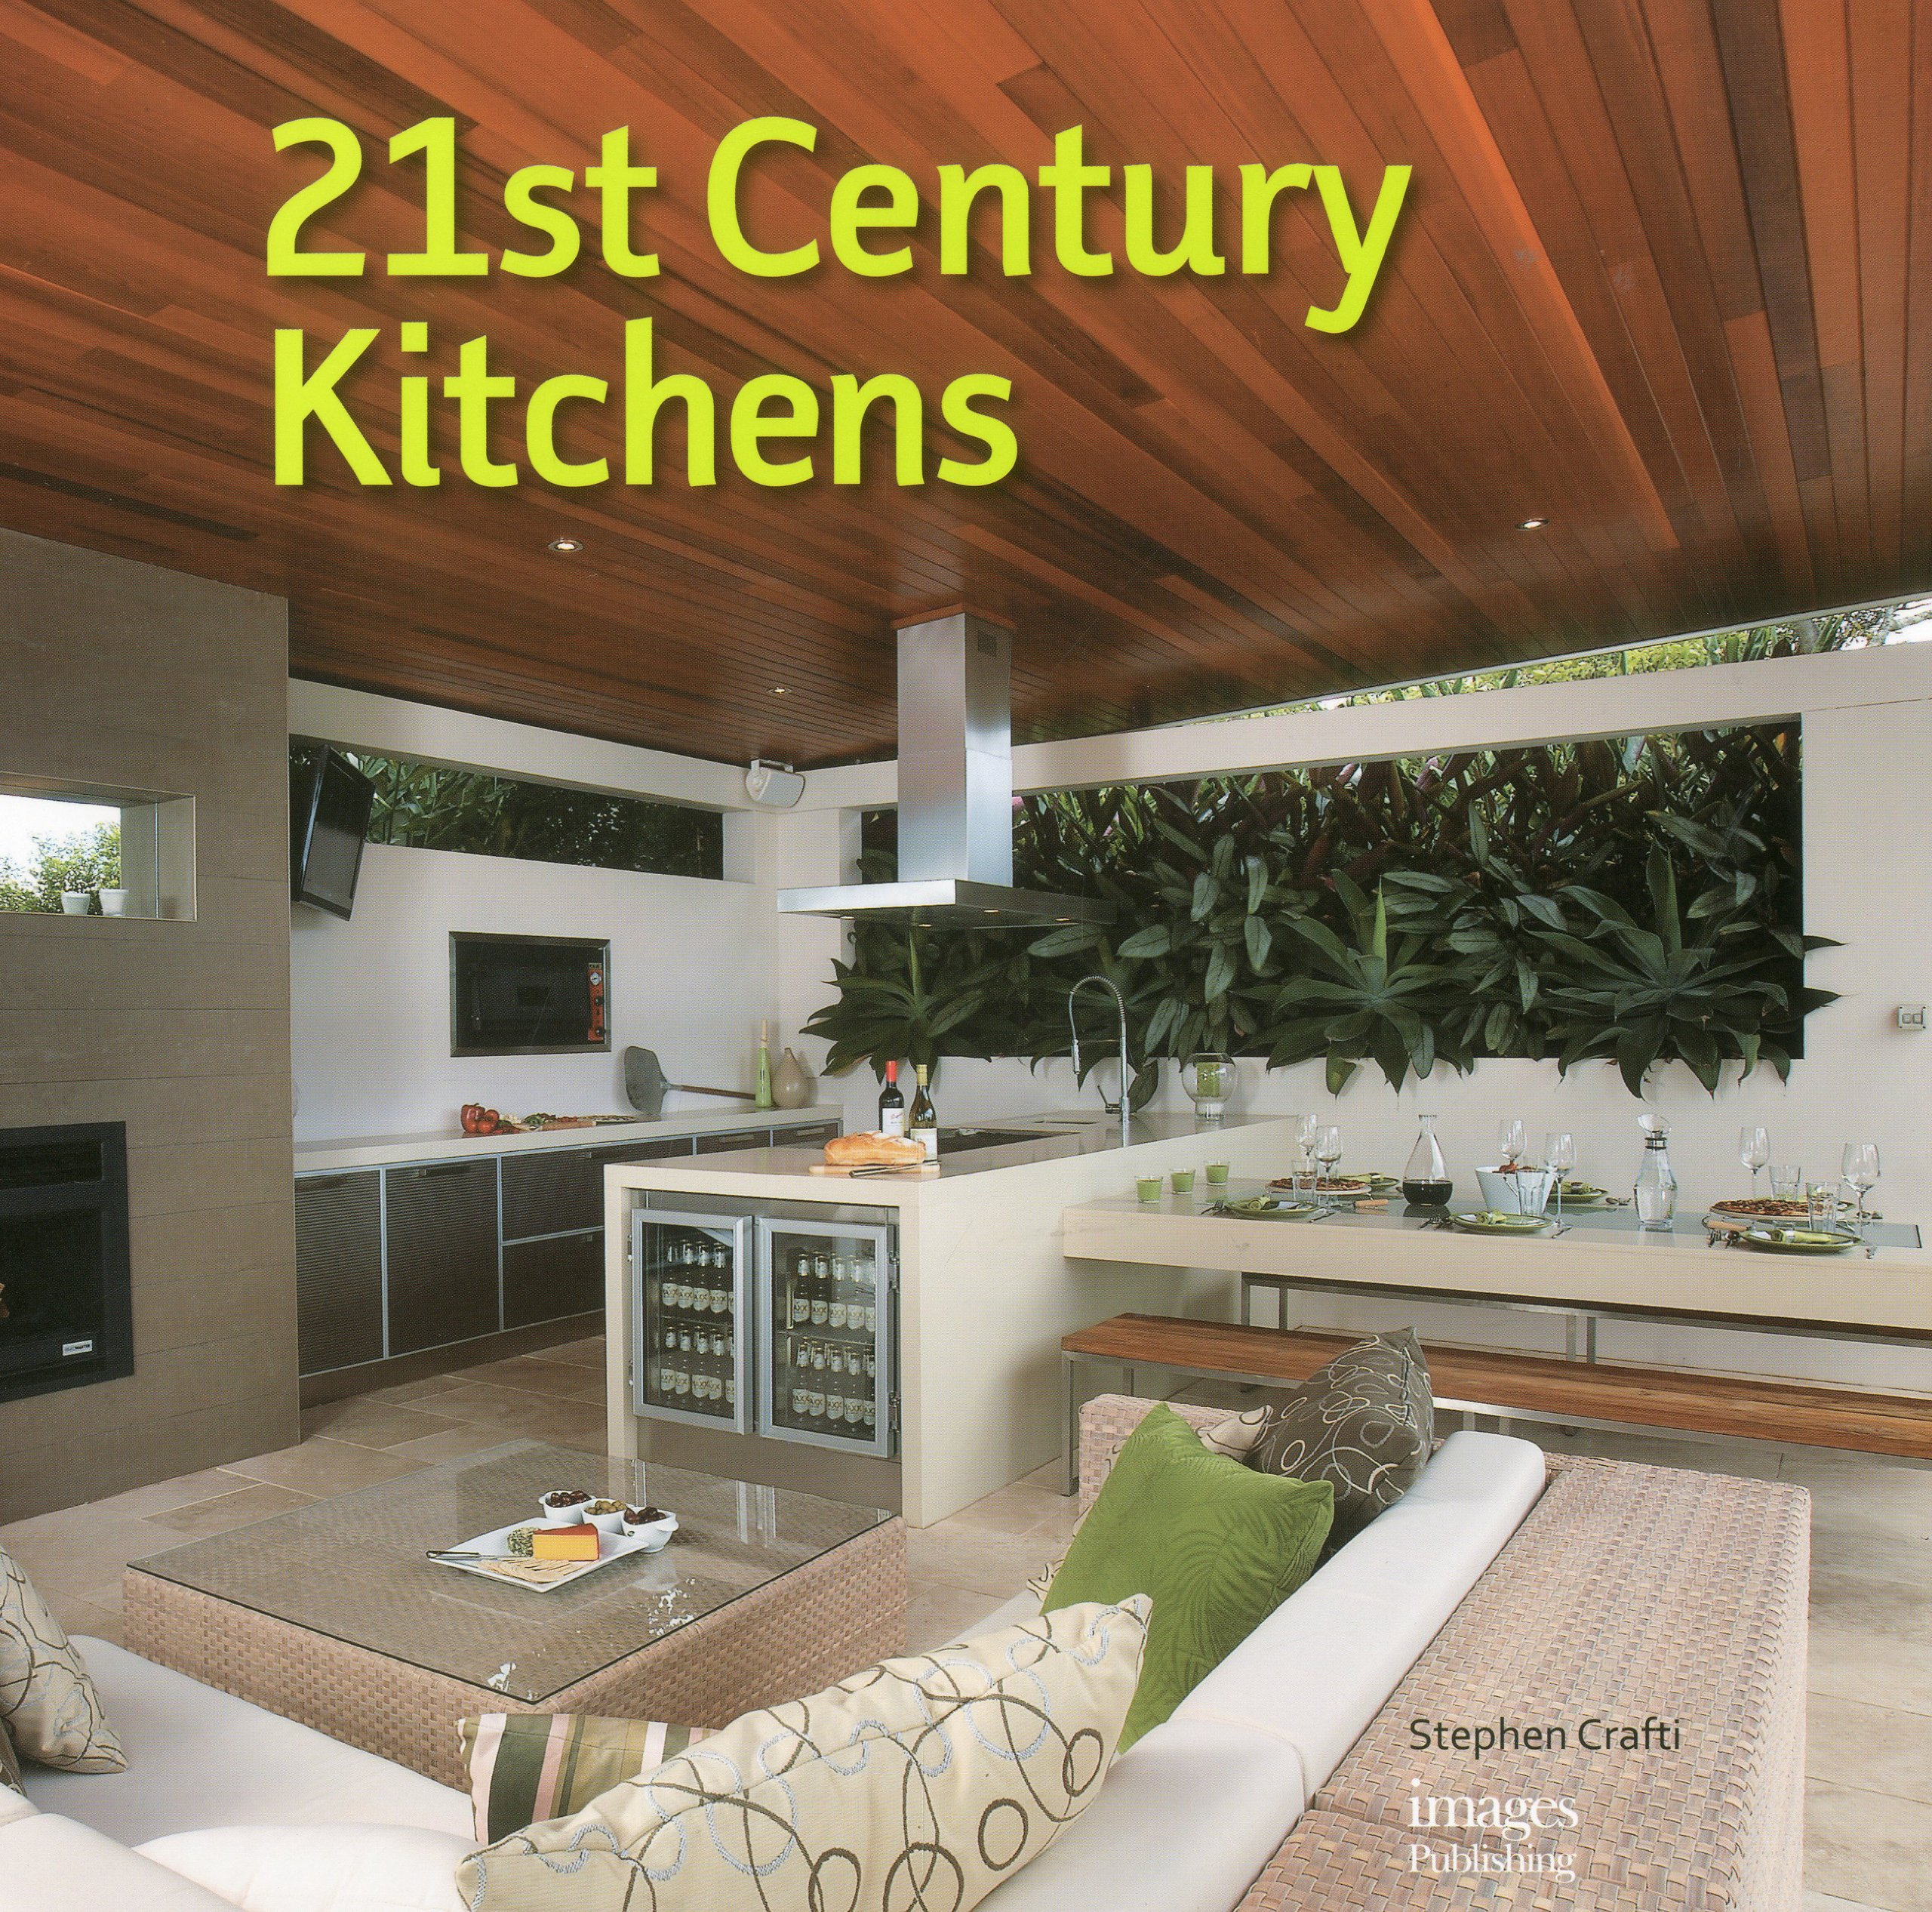 amazon com  21st century kitchens  21st century  images publishing    9781864703764   stephen crafti  books amazon com  21st century kitchens  21st century  images publishing      rh   amazon com